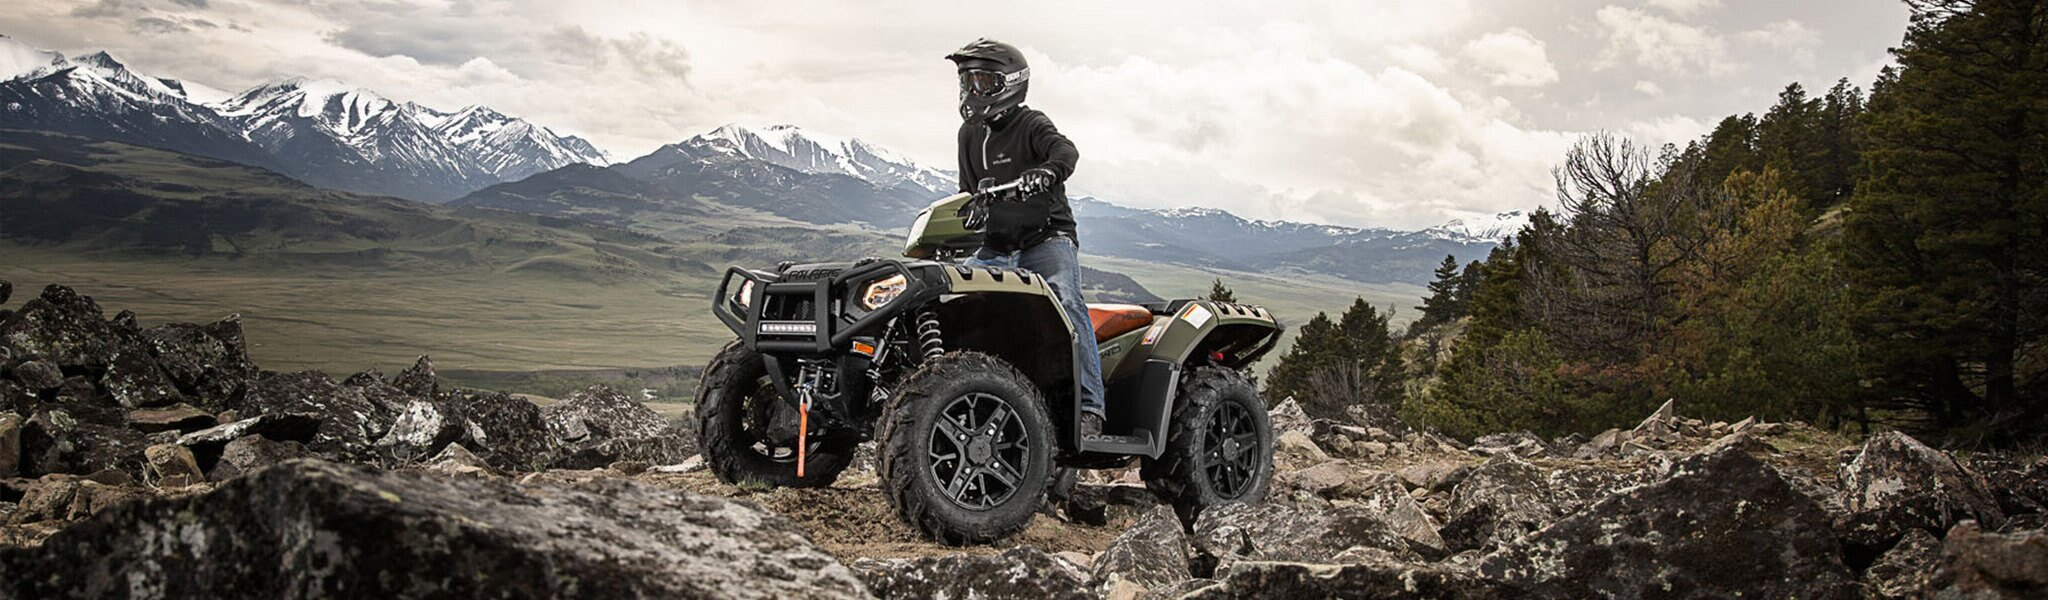 POLARIS AND YAMAHA DEALER IN PALMERSTON, ON | PALMERSTON